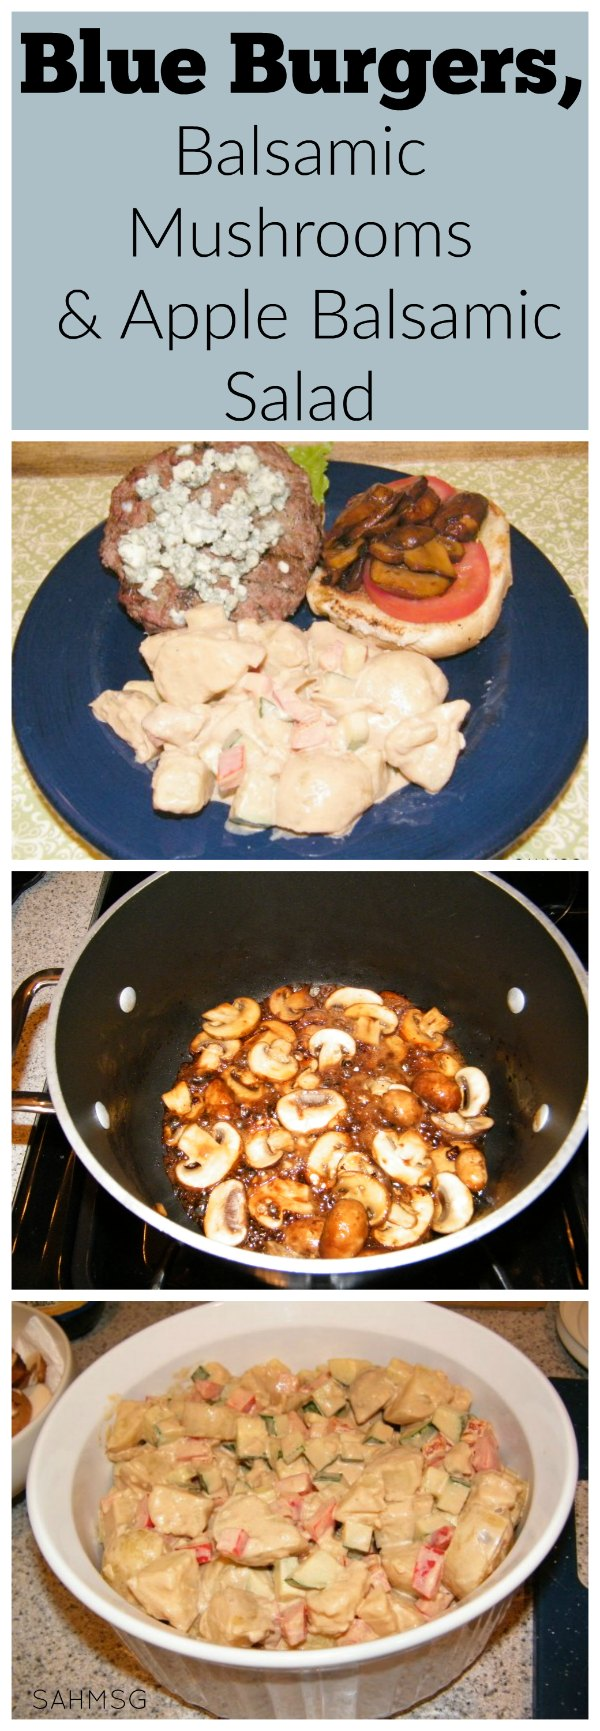 Blue burgers with balsamic glazed mushrooms and apple balsamic potato salad. Great for the grill!